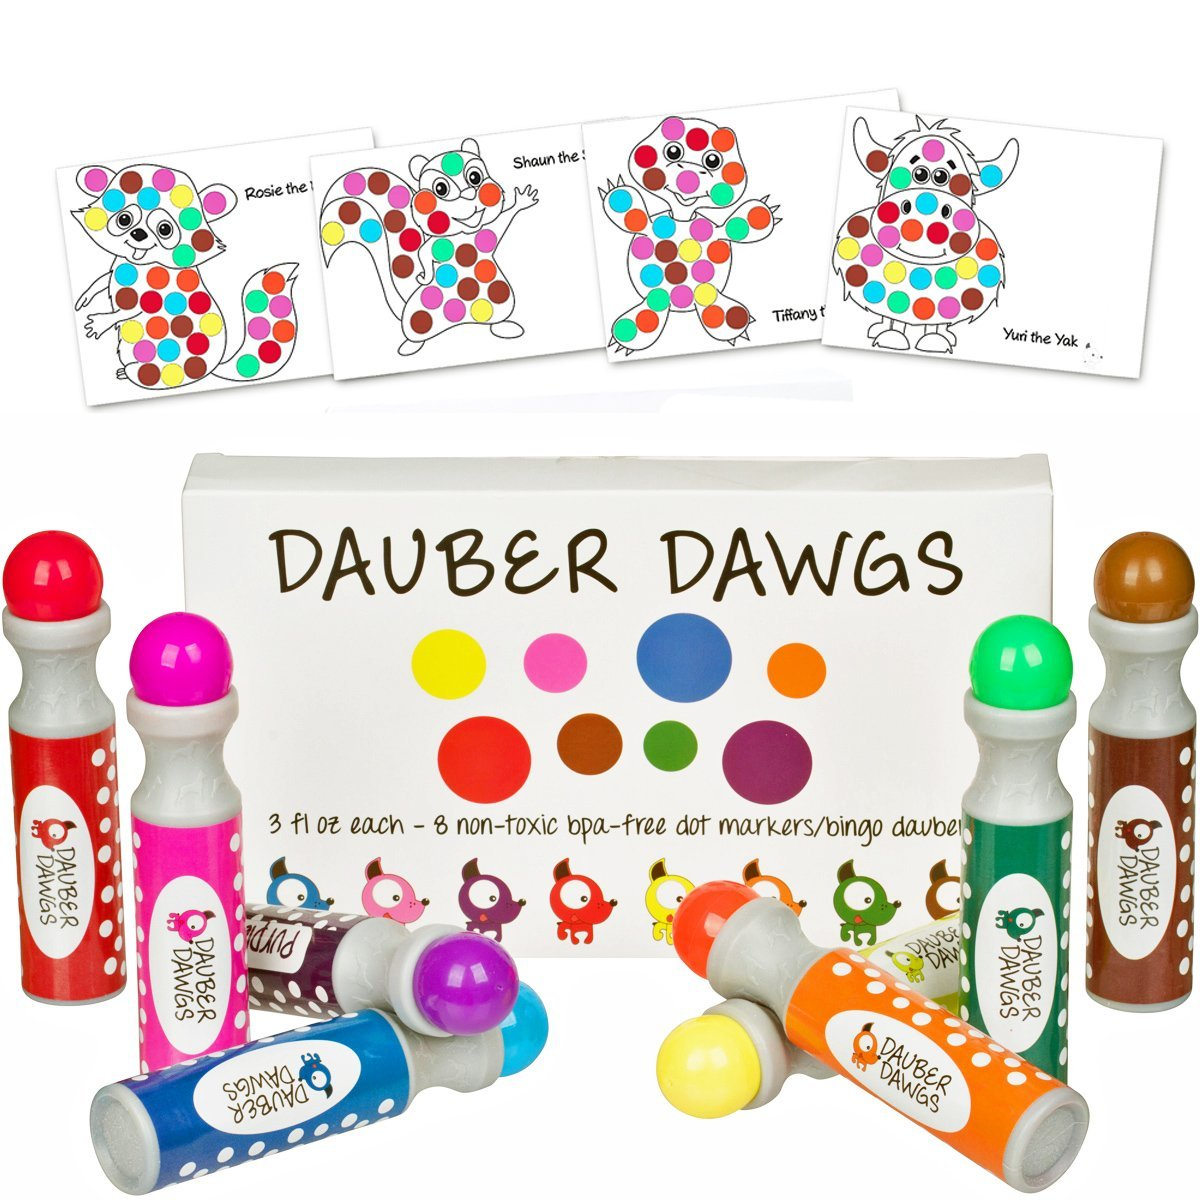 8-pack Washable Dot Markers / Bingo Daubers Dabbers Dauber Dawgs Kids / Toddlers / Preschool / Children Art Supply 3 Pdf Coloring eBooks = 100 Activity Sheets To Do! Cameron Frank Products